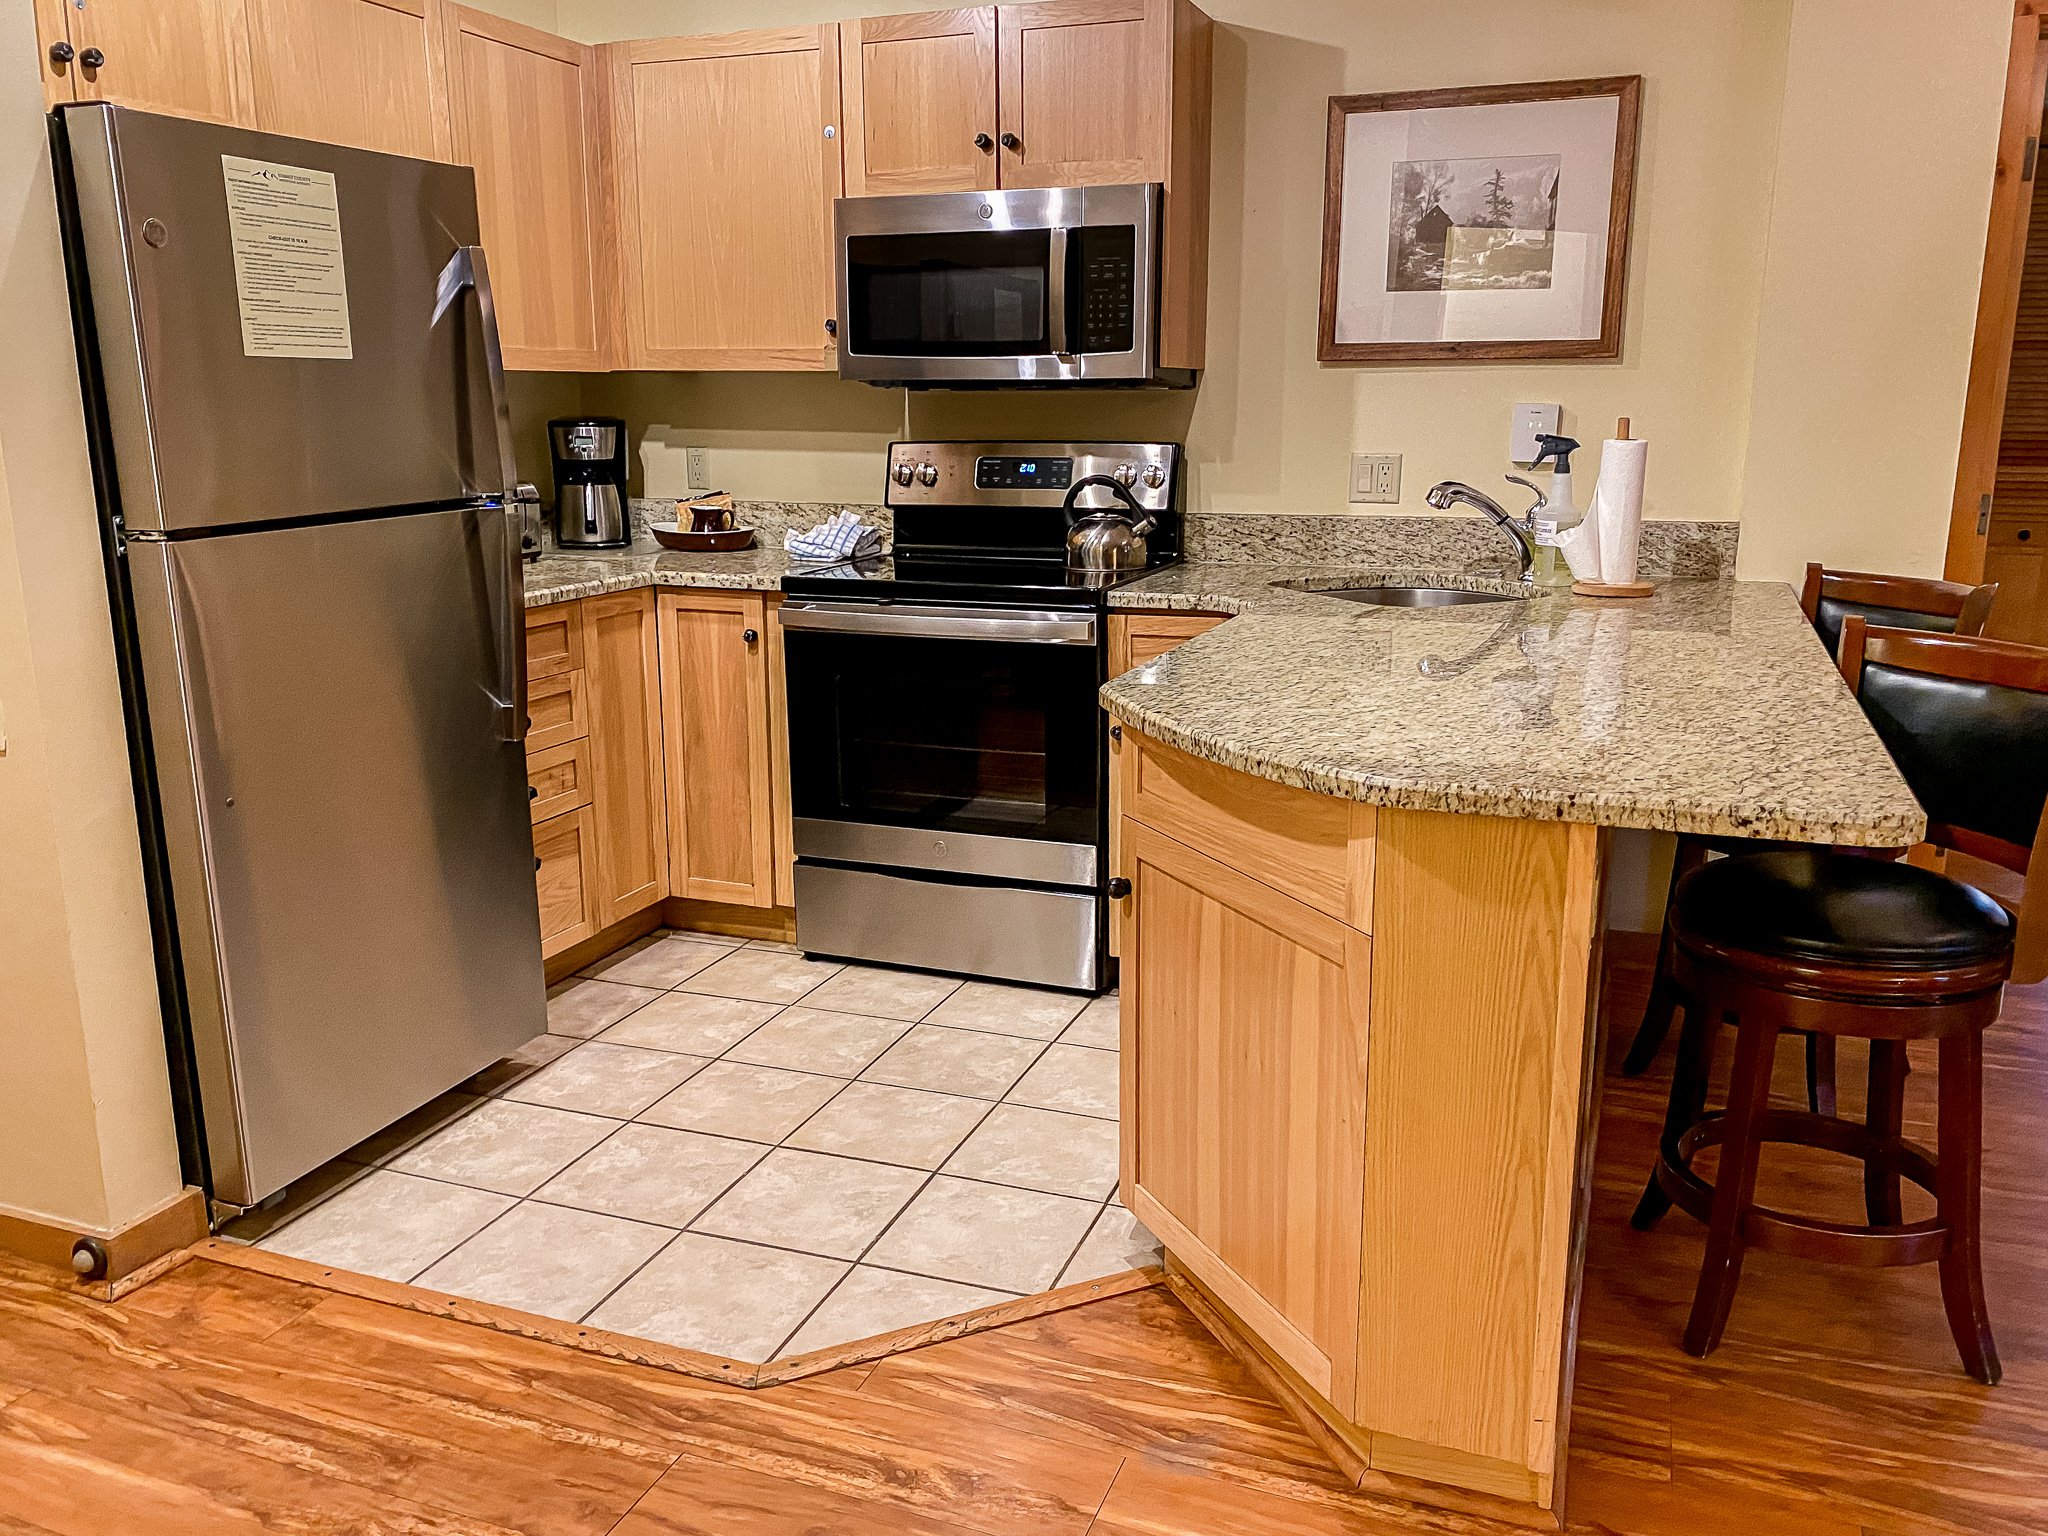 The kitchen features new stainless steel appliances and granite countertops.